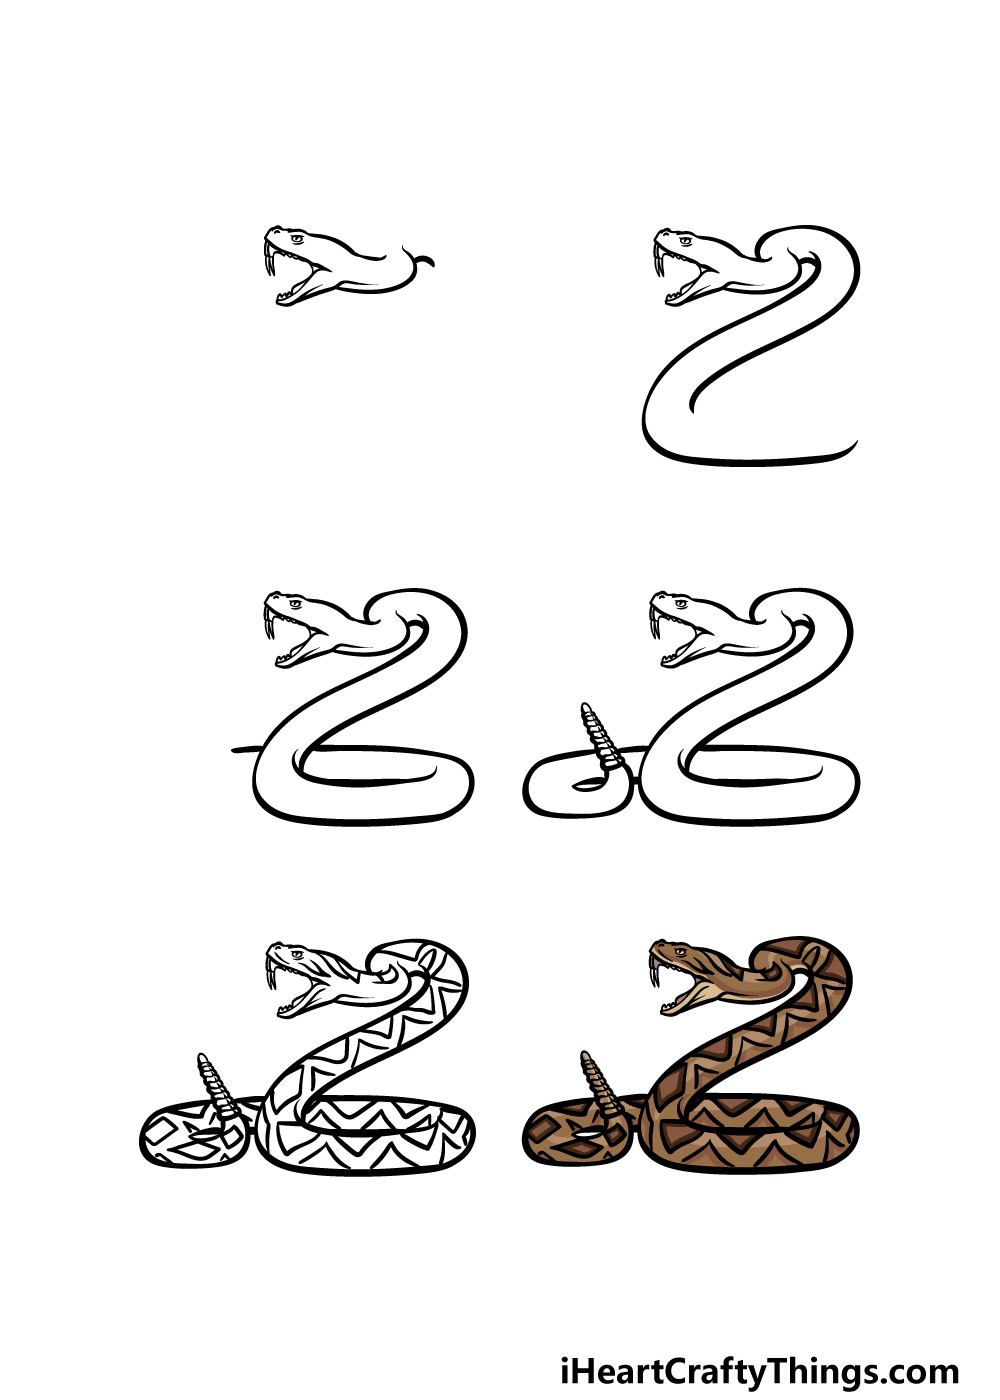 how to draw a rattlesnake in 6 steps